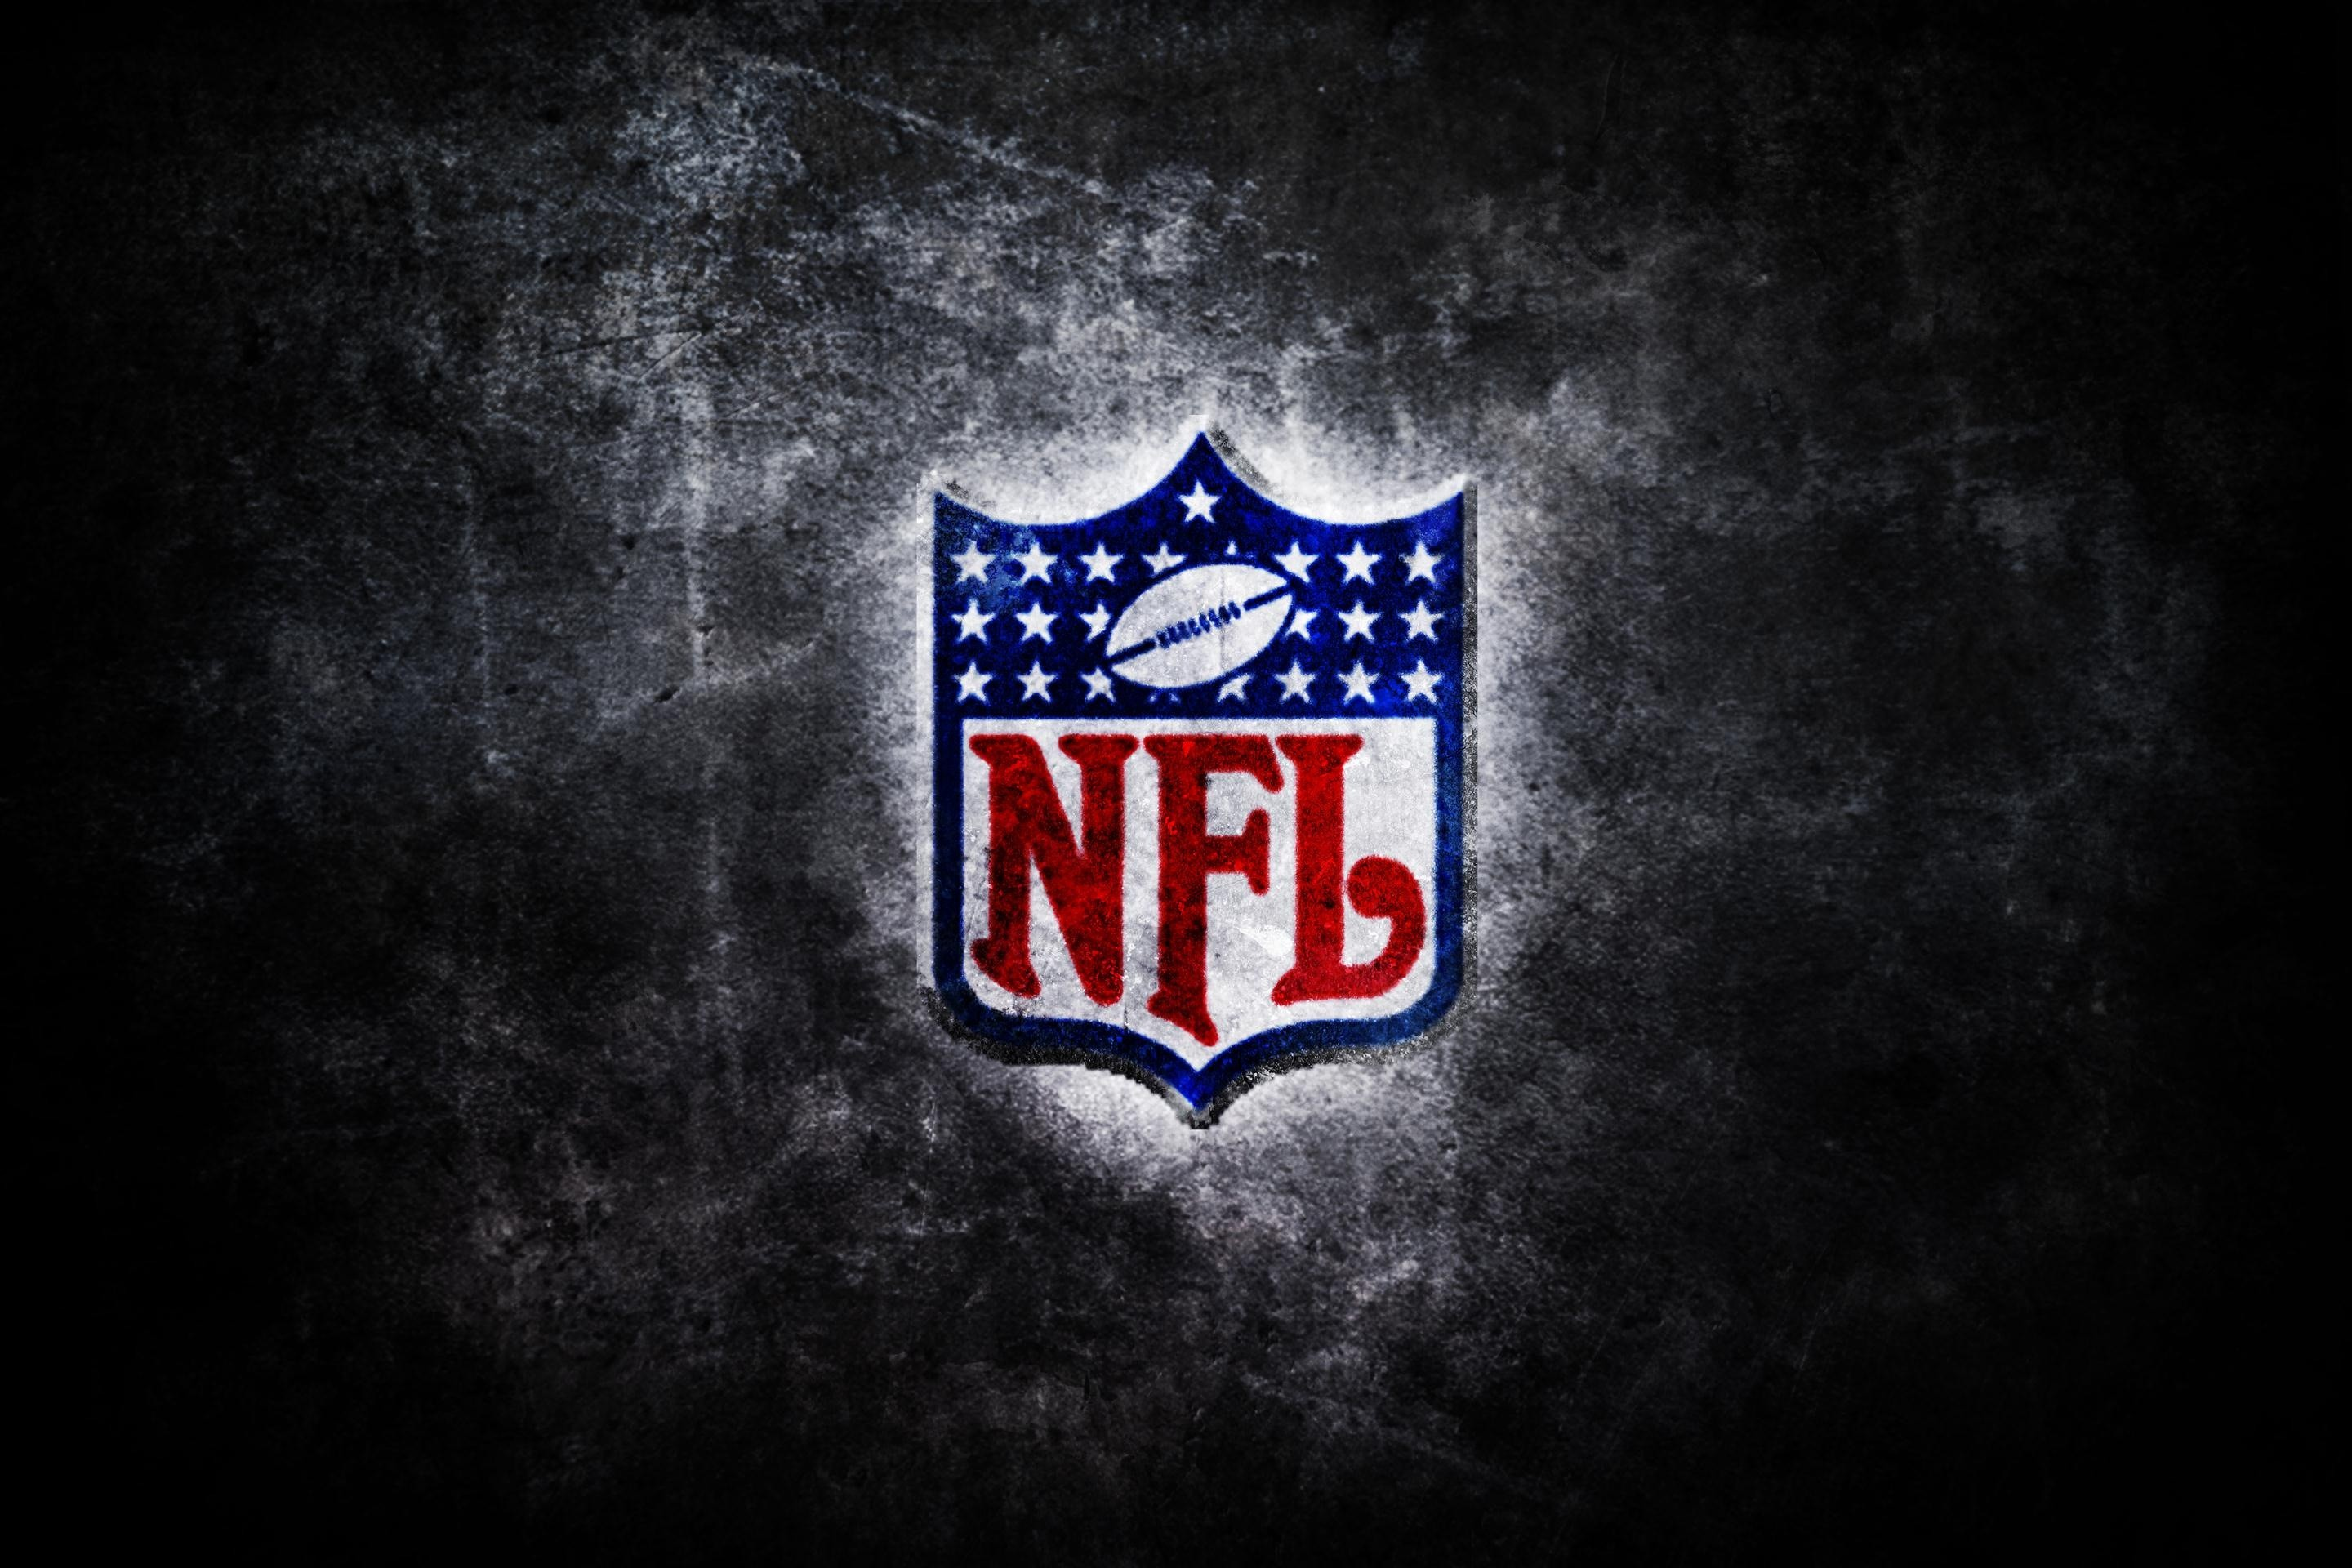 … Tons of Awesome Football Wallpaper Nfl Desktop Backgrounds To Download  For Free Free Hd Wallpaper Images